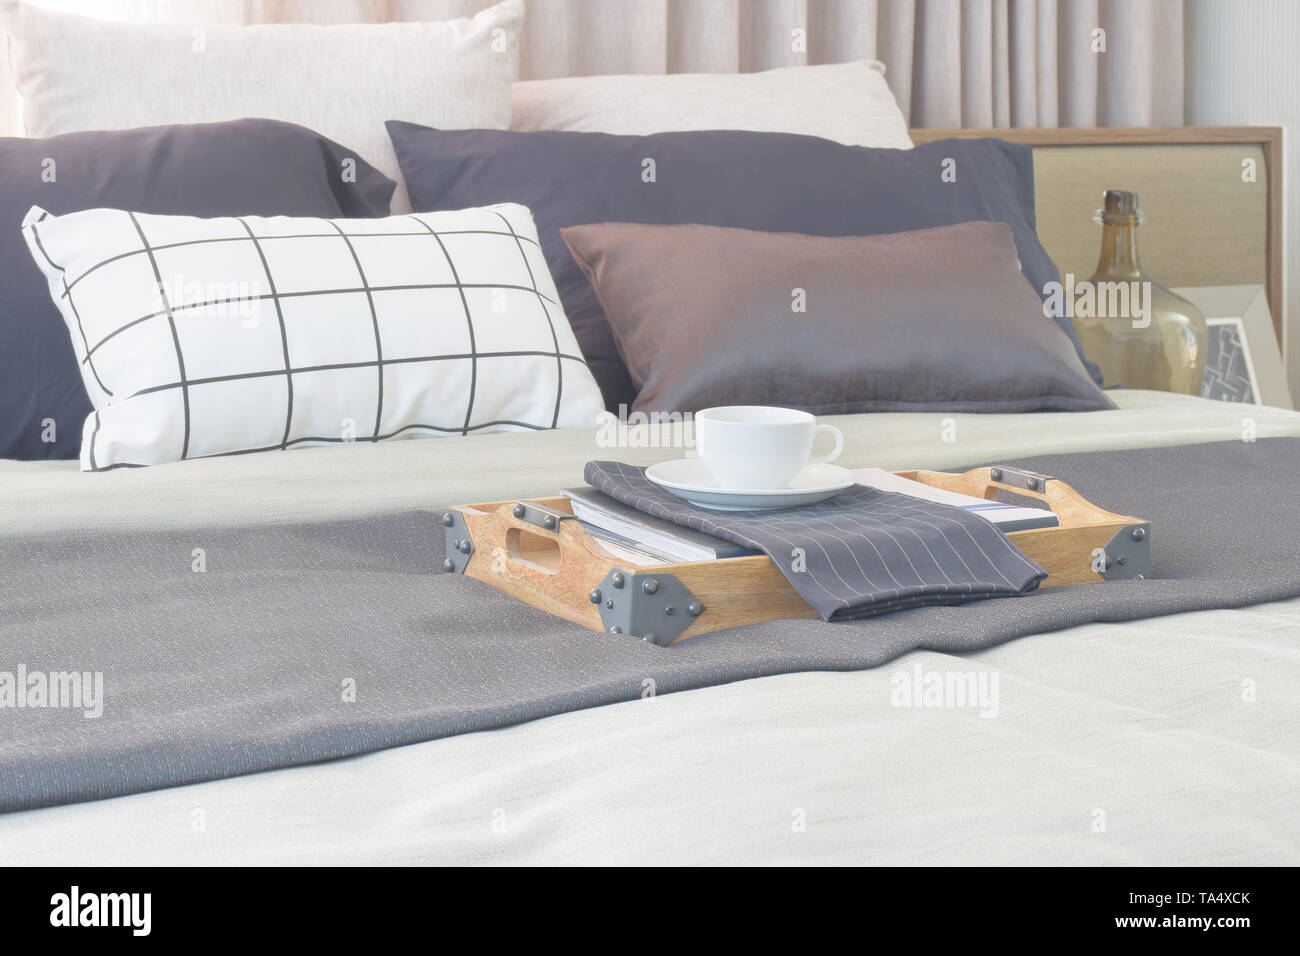 Coffee cup in wooden tray setting on bed in modern classic style interior bedroom - Stock Image